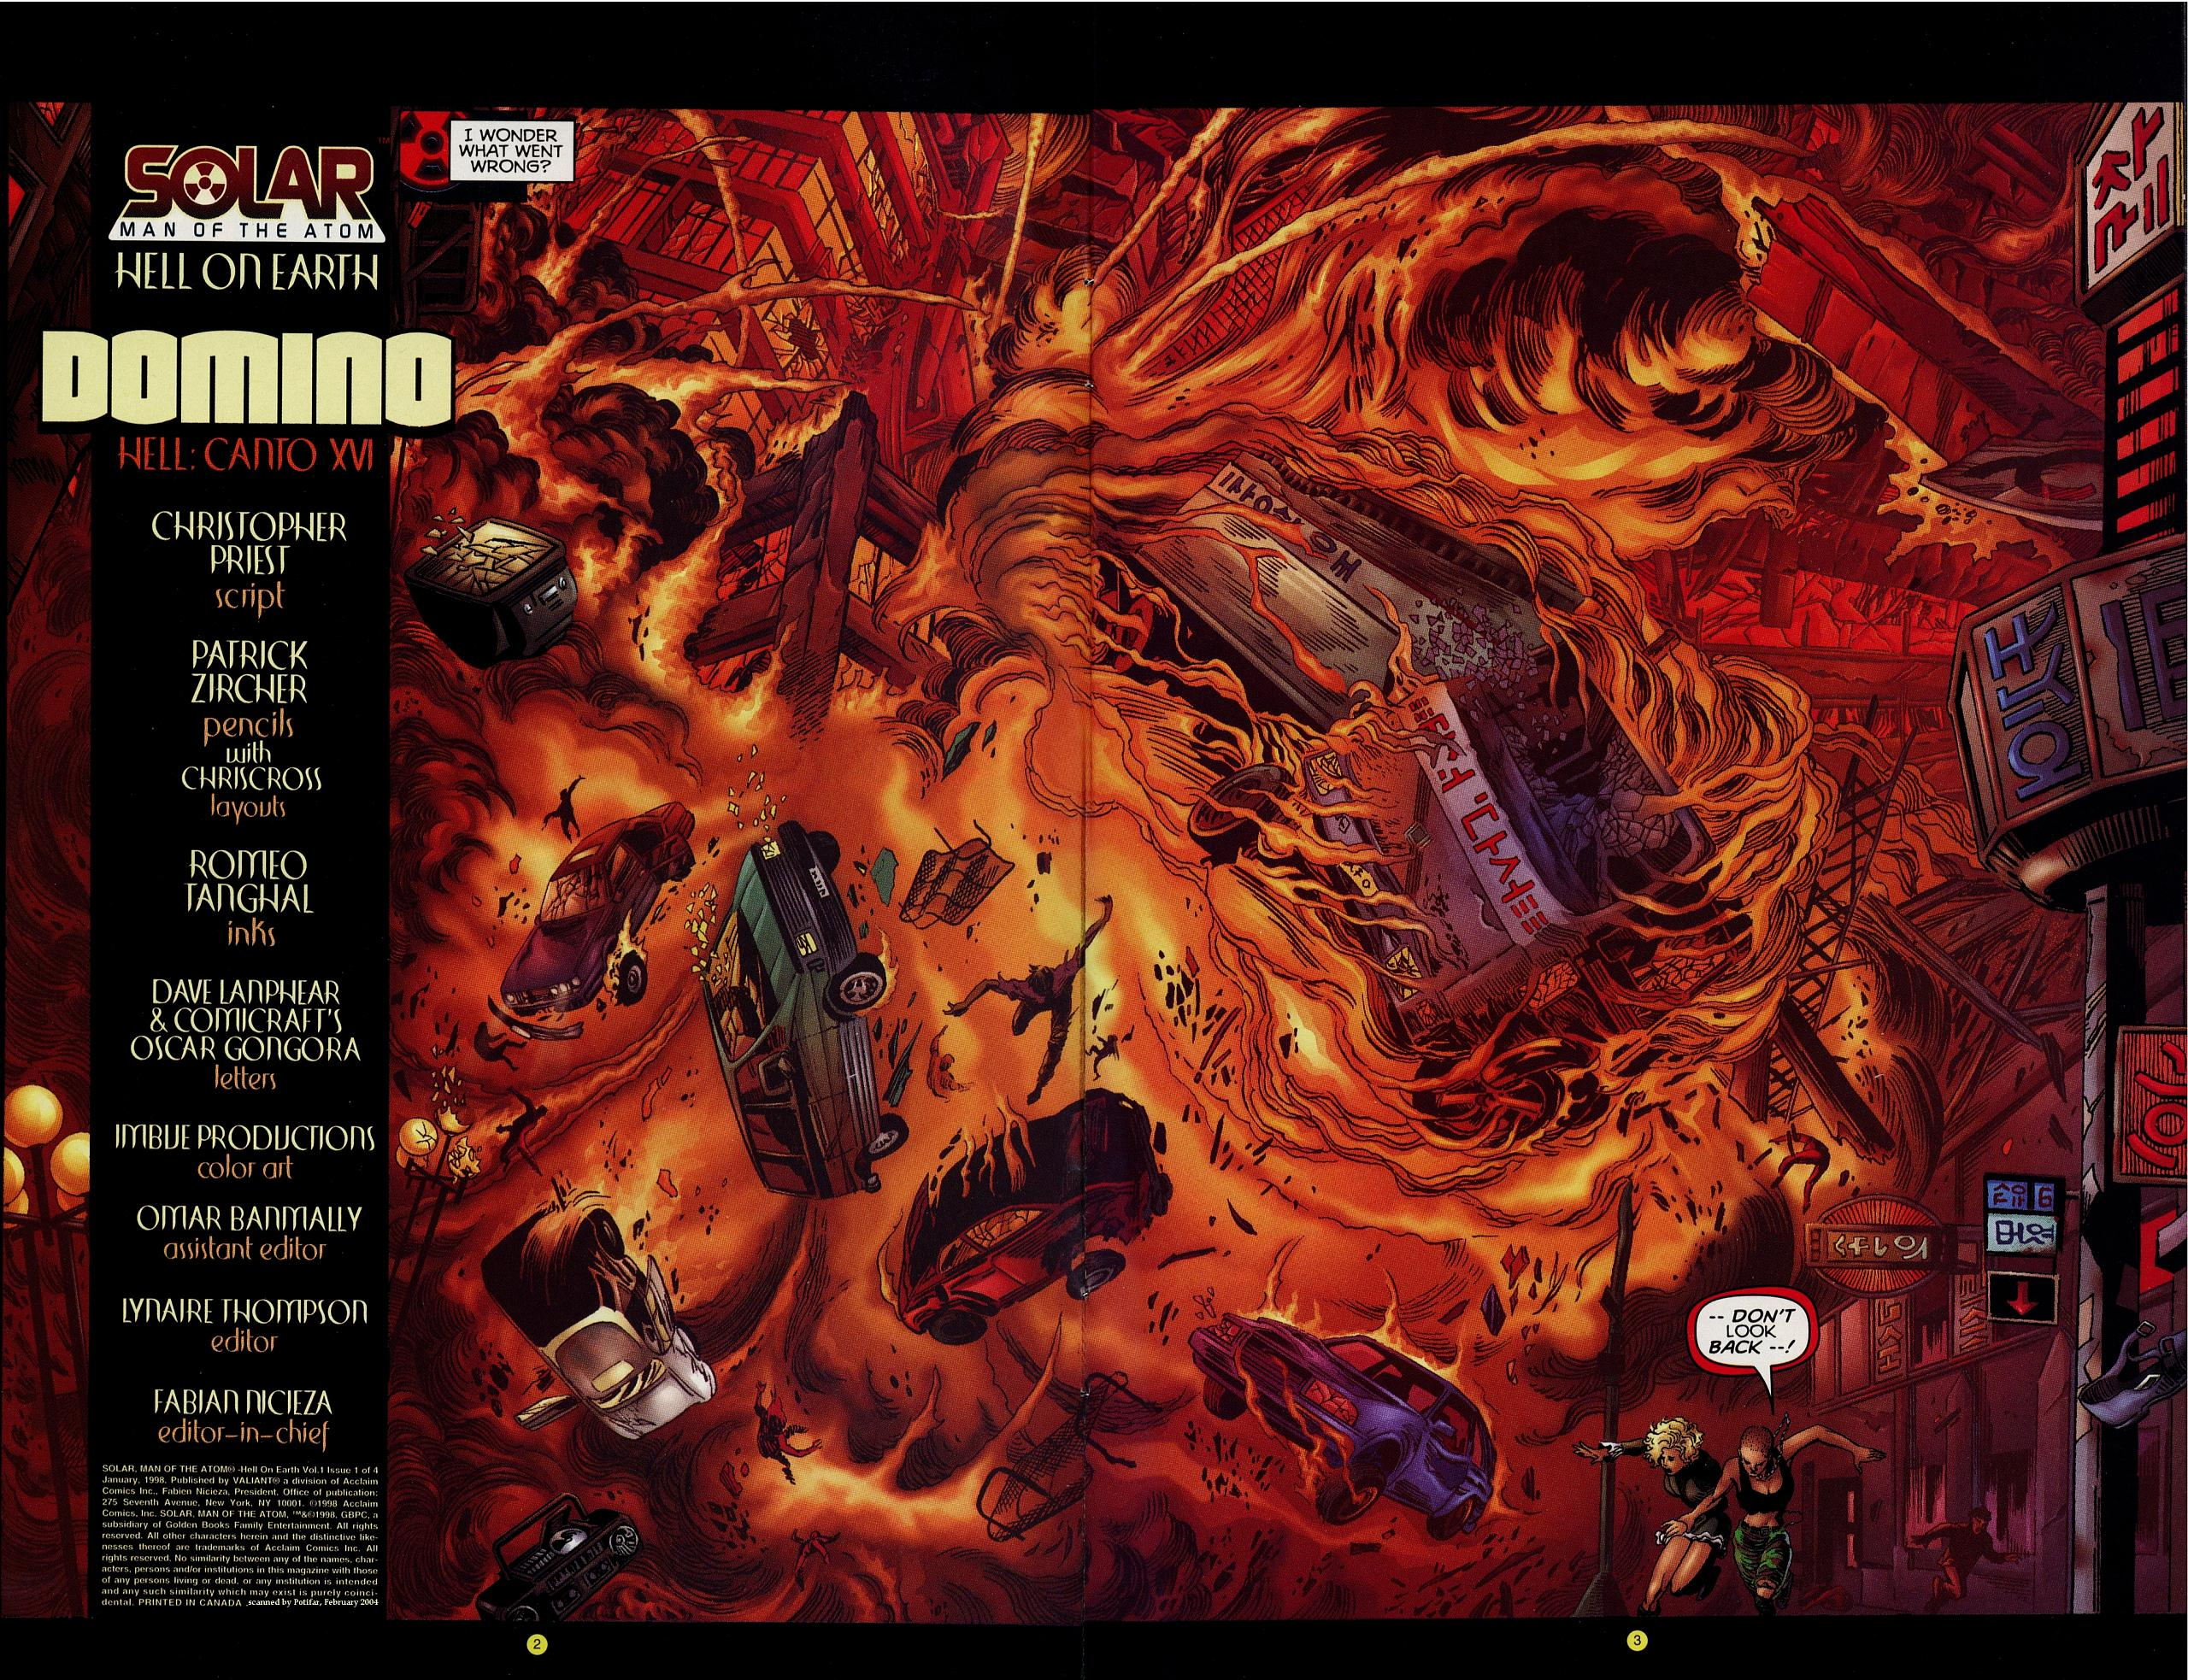 Read online Solar, Man of the Atom: Hell on Earth comic -  Issue #1 - 4